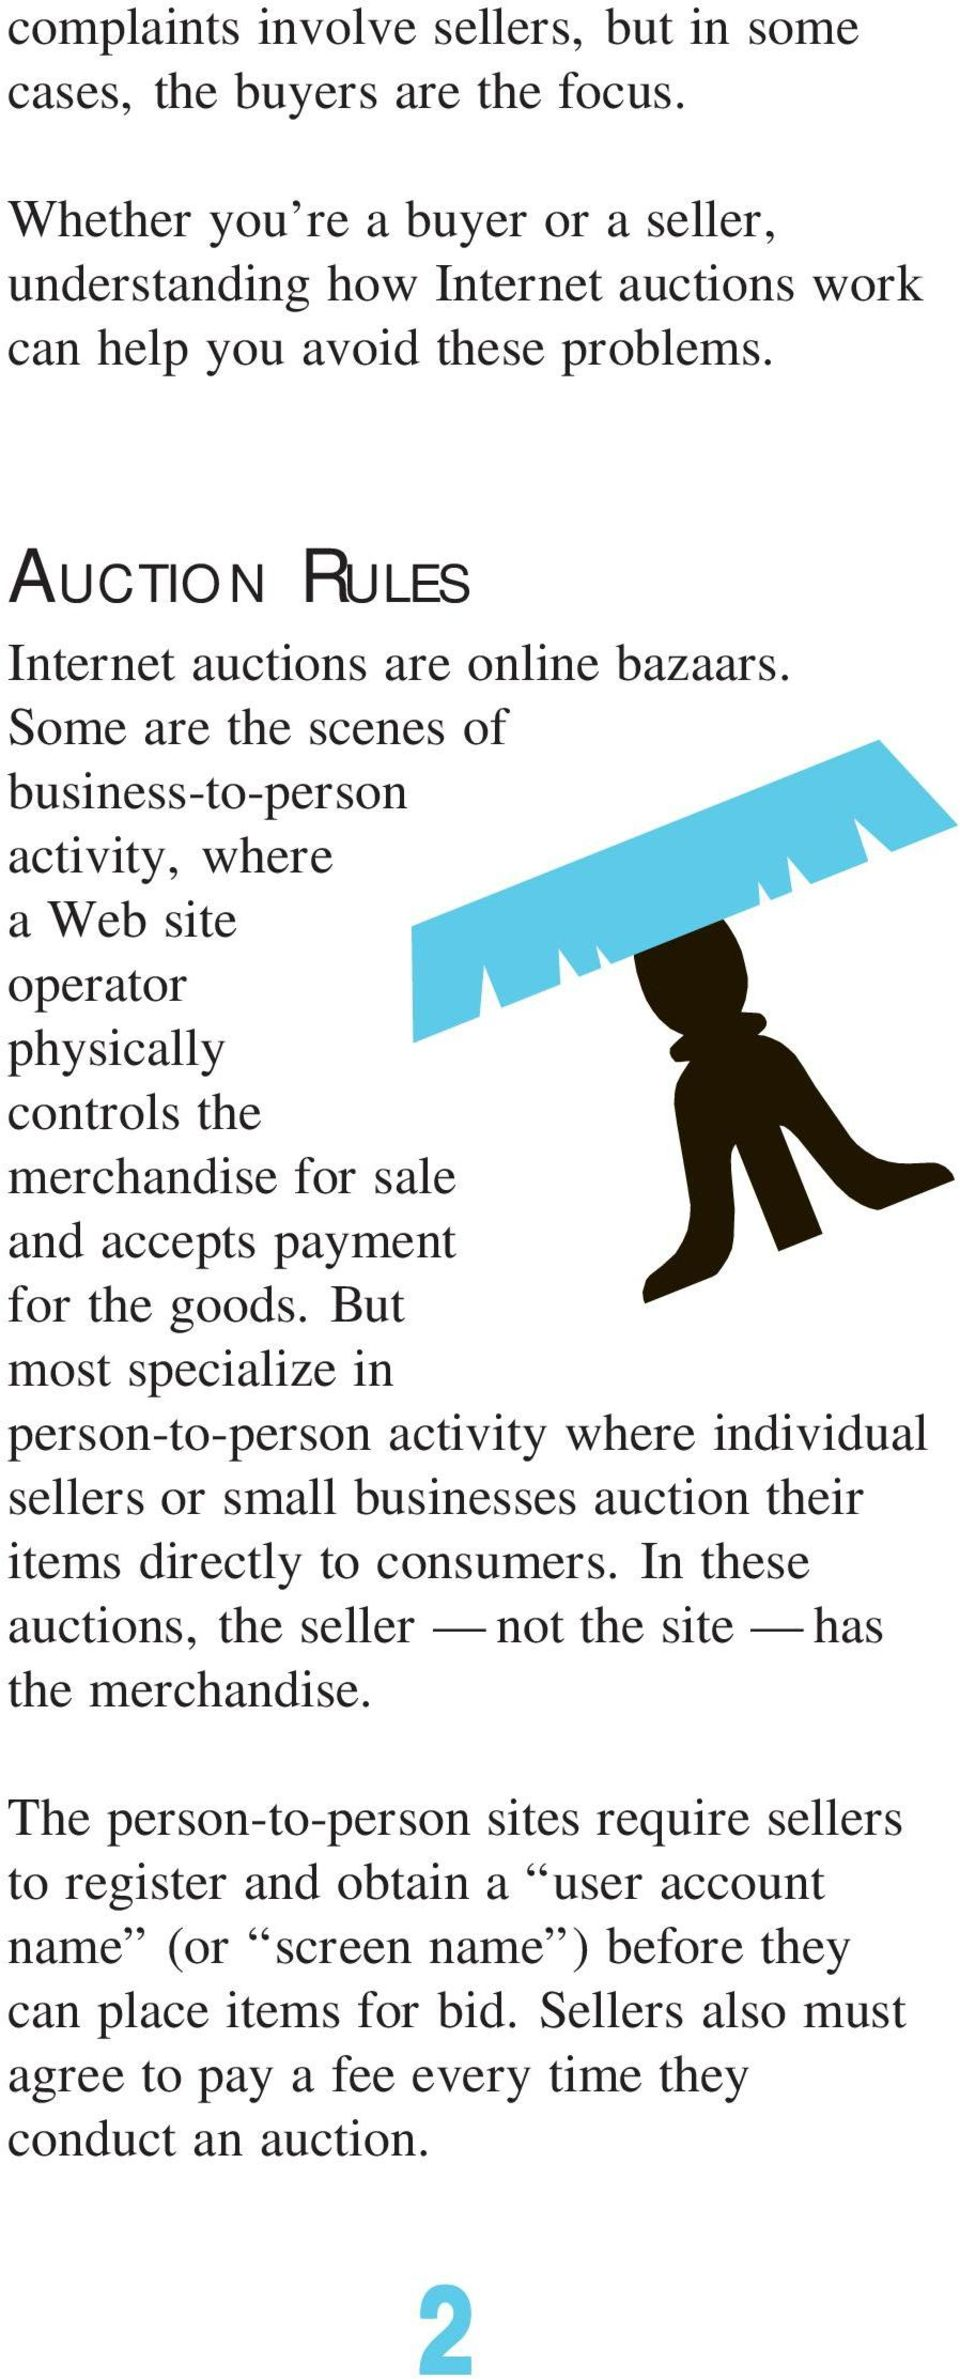 Some are the scenes of business-to-person activity, where a Web site operator physically controls the merchandise for sale and accepts payment for the goods.